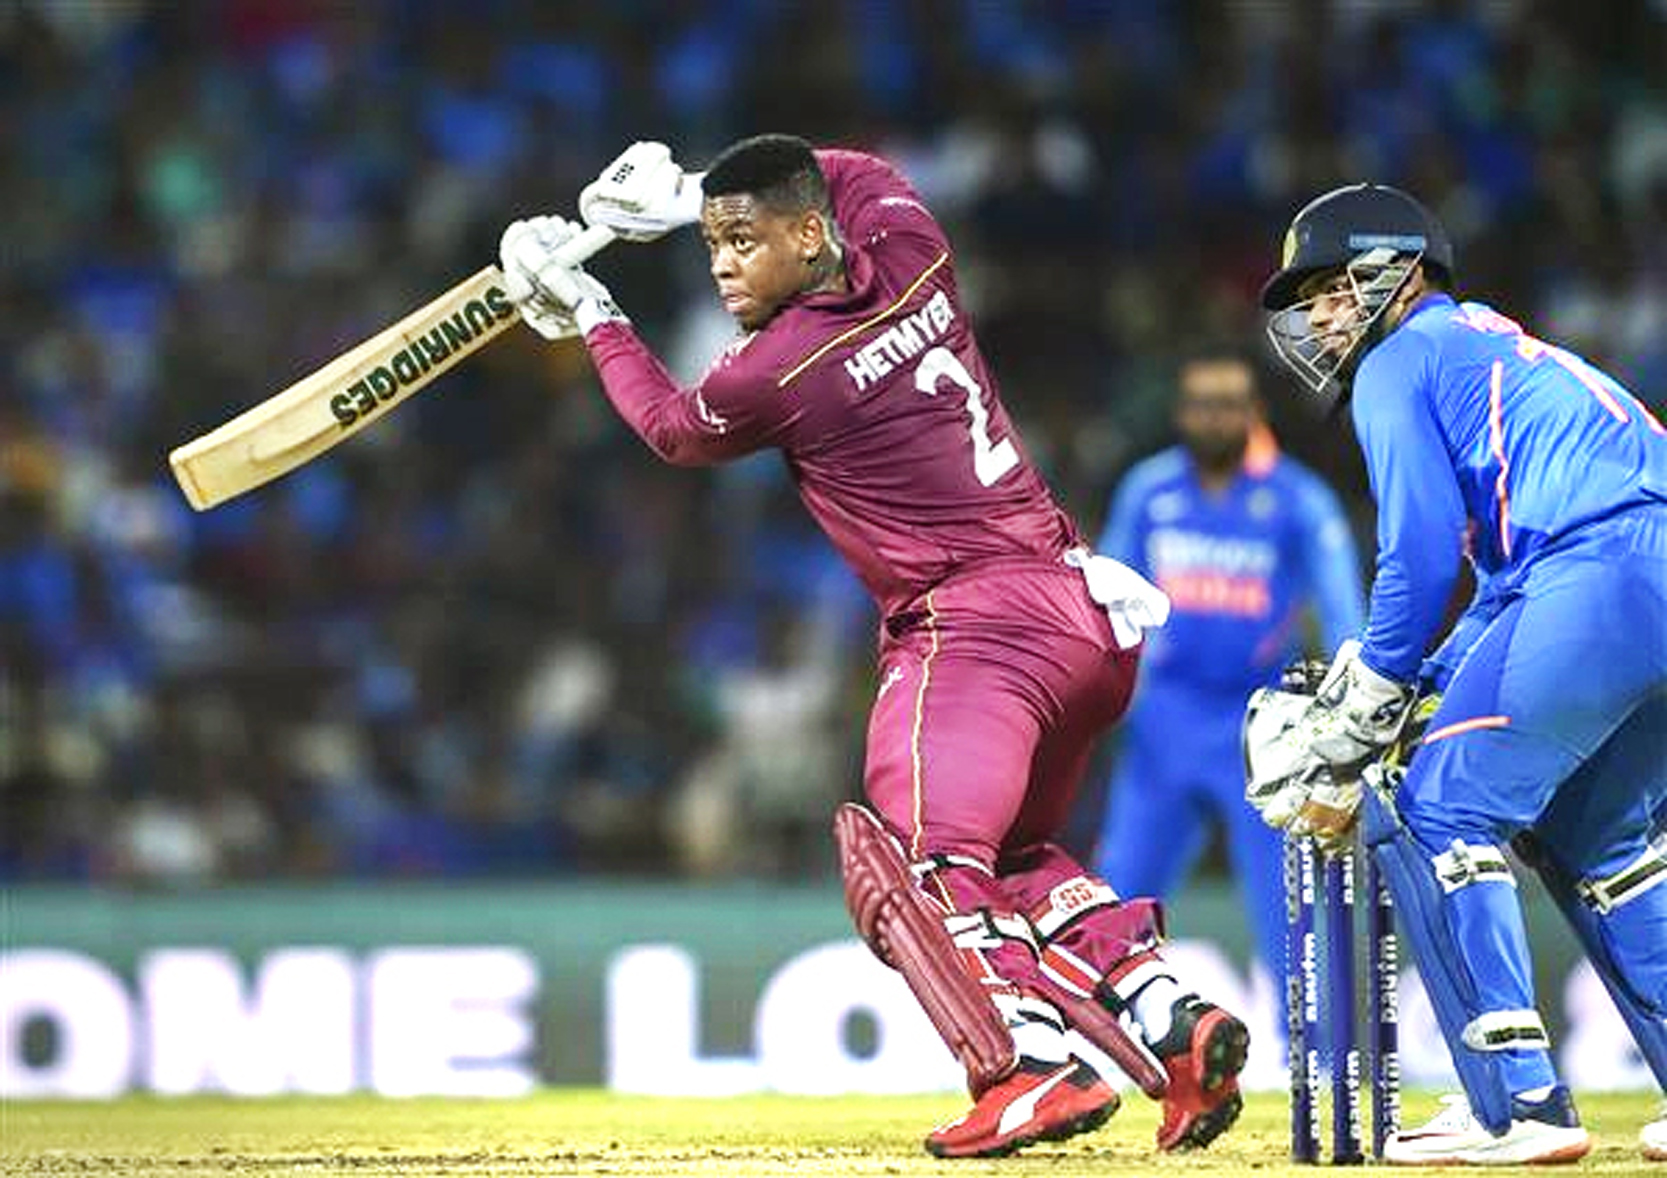 West Indies batsman Shimron Hetmyer executing a shot during his knock of 139 against India at Chennai on Sunday.